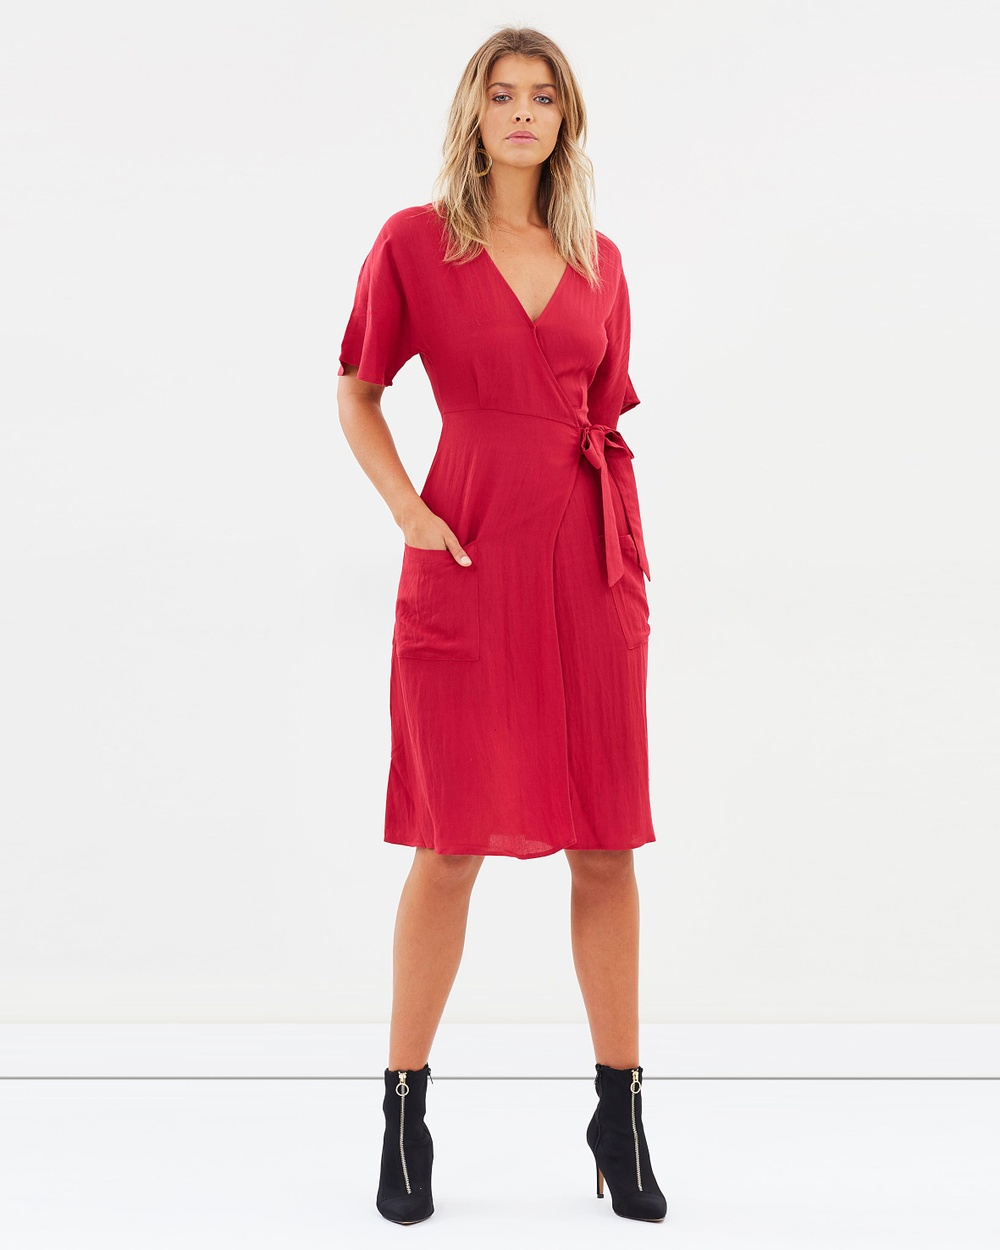 Atmos & Here ICONIC EXCLUSIVE Cheyenne Midi Dress Dresses Red ICONIC EXCLUSIVE Cheyenne Midi Dress